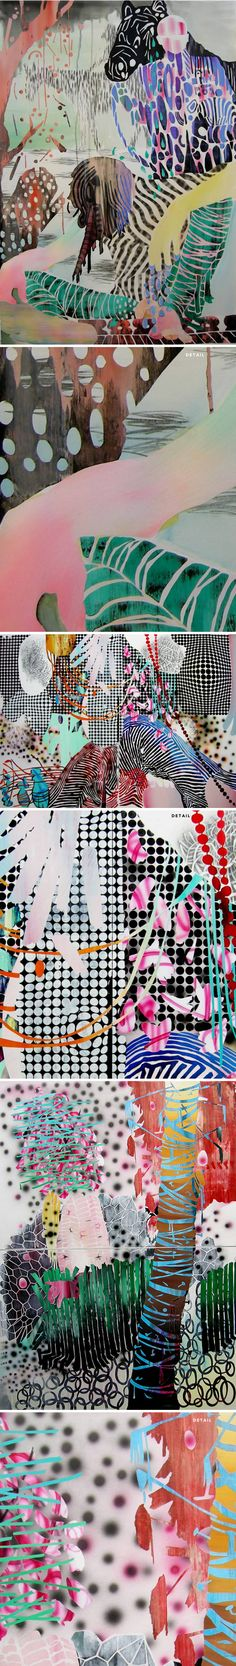 carlson hatton- contemporary art that I really would want for my brand.